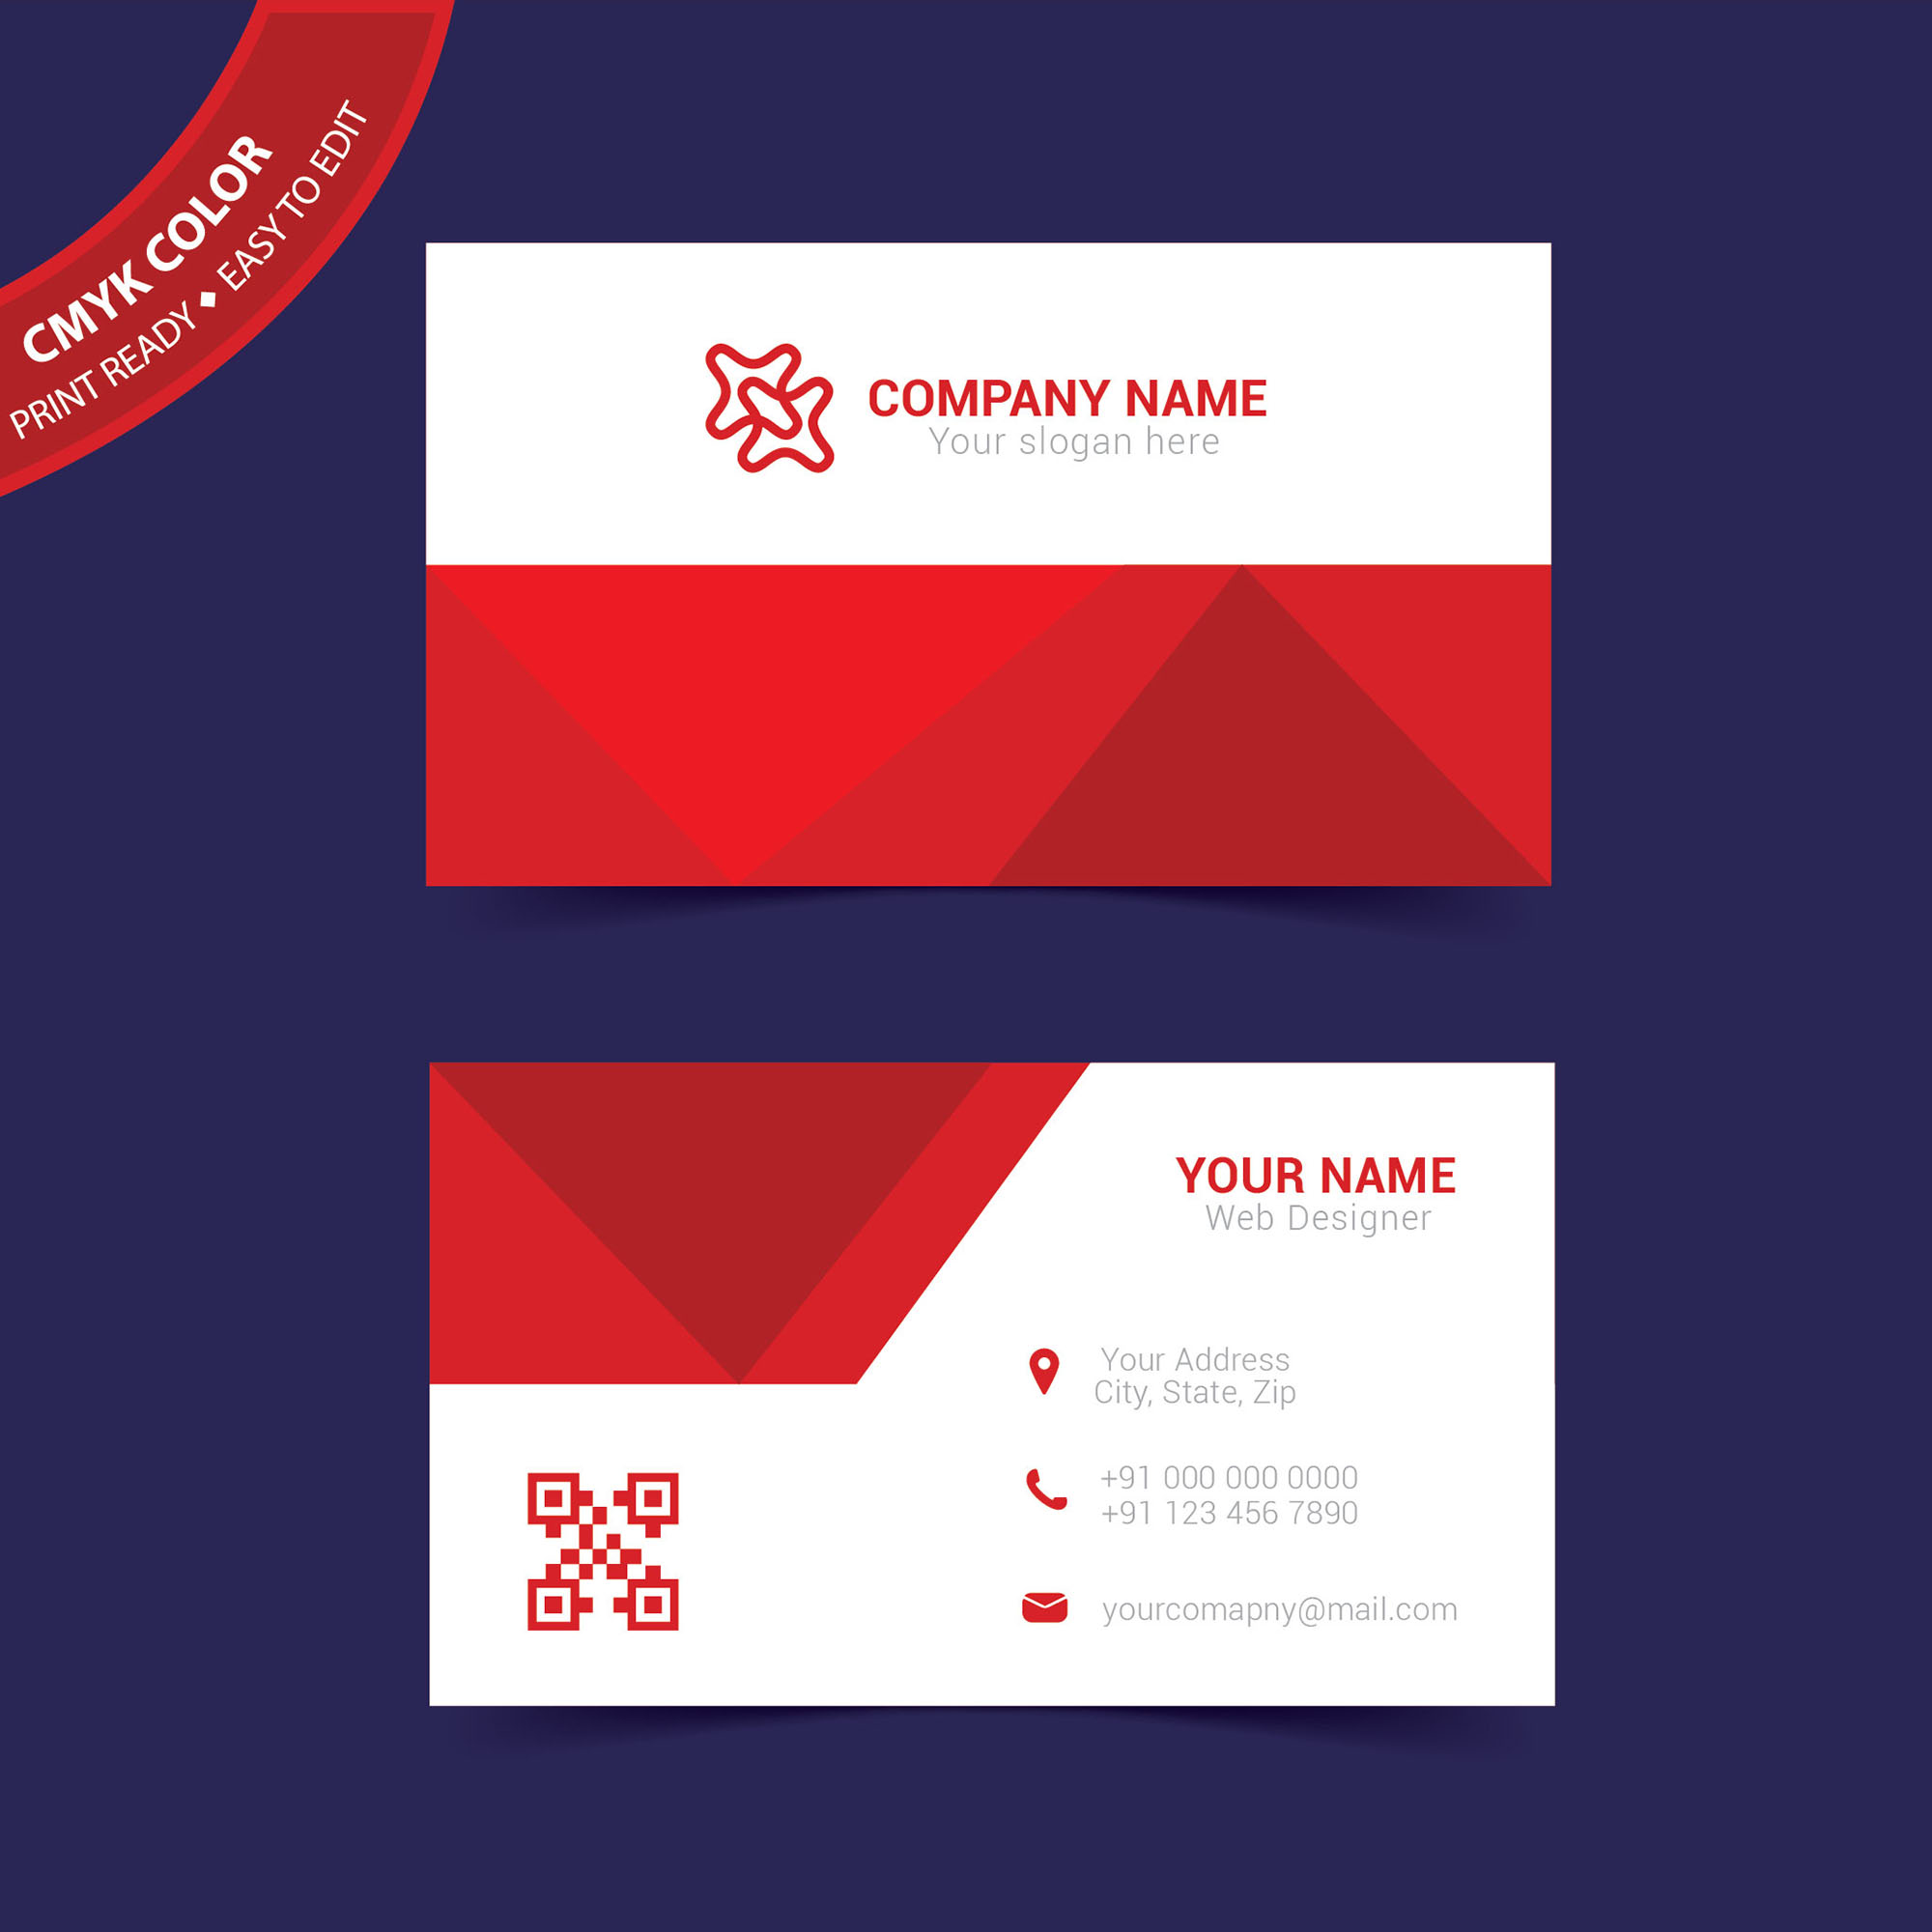 Business card print template free download wisxi business card business cards business card design business card template design templates cheaphphosting Image collections